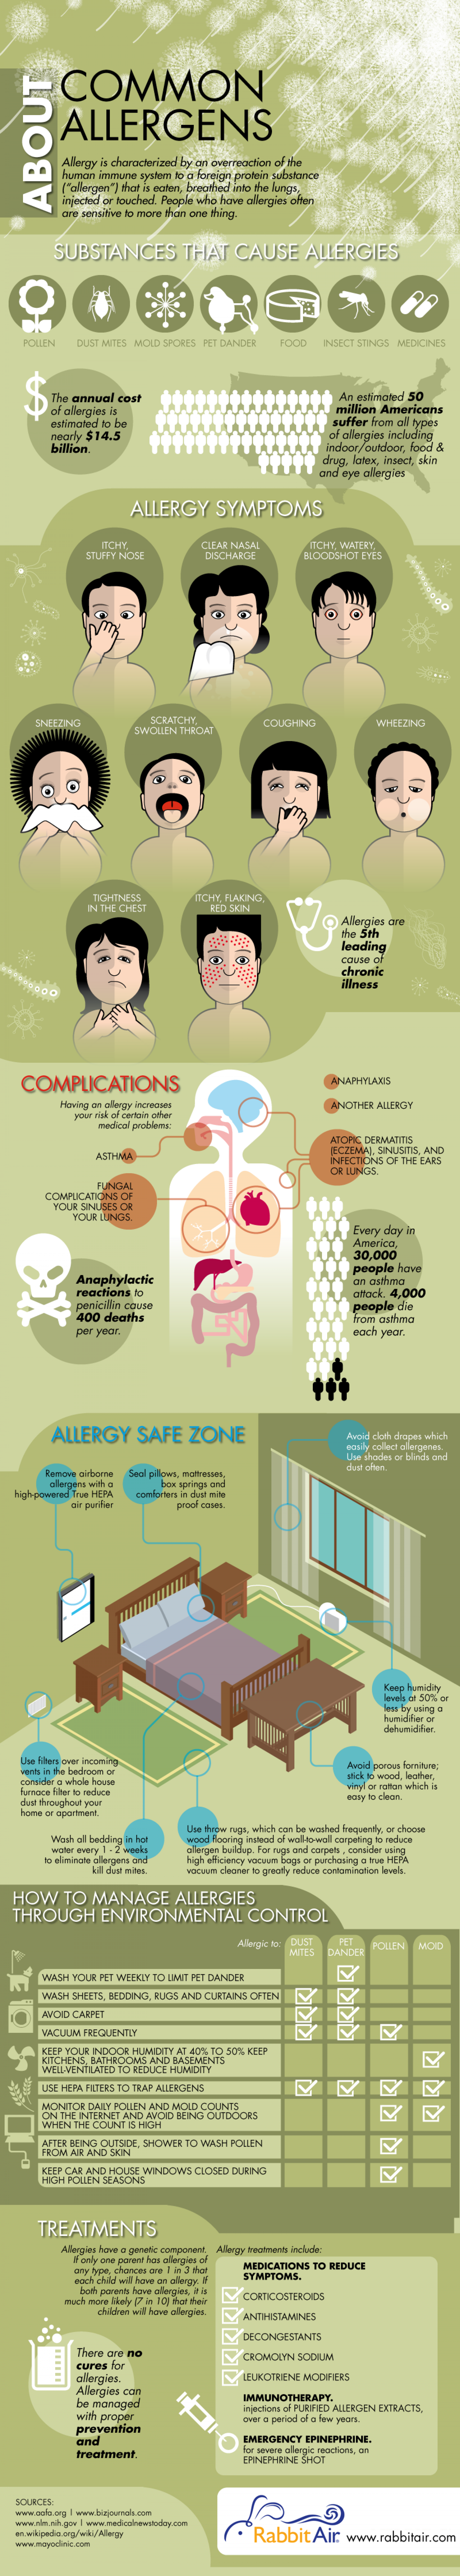 Common Allergens Infographic